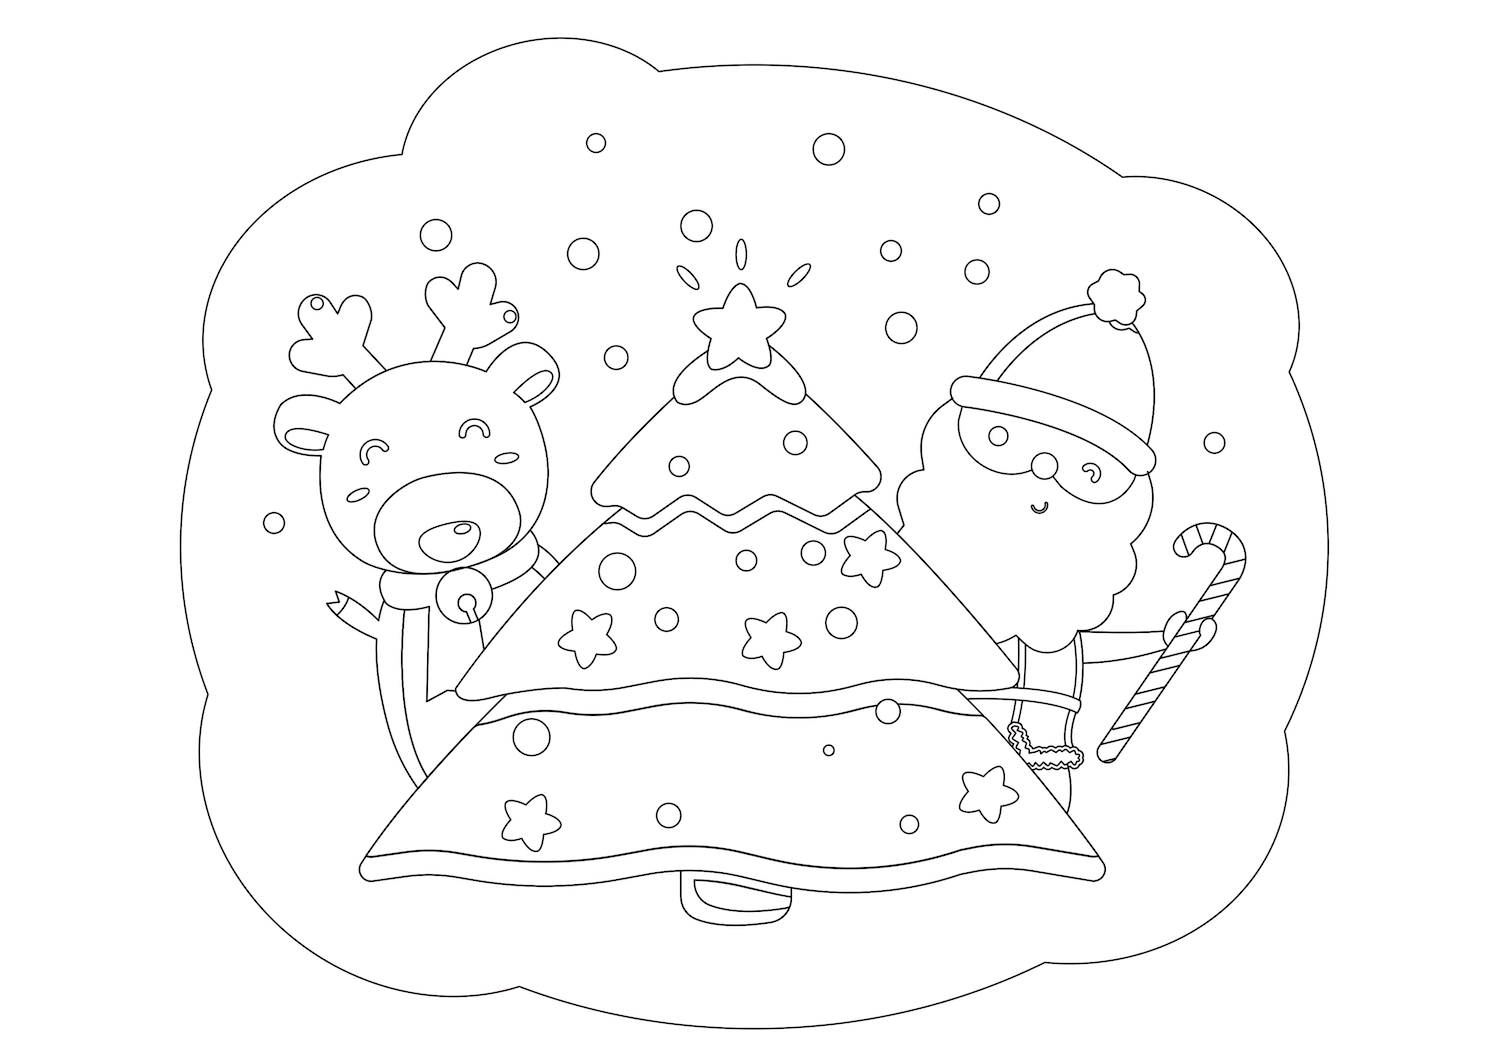 Free Christmas Coloring Pages Kidspartyworks Com Free Christmas Coloring Pages Santa Coloring Pages Christmas Coloring Pages